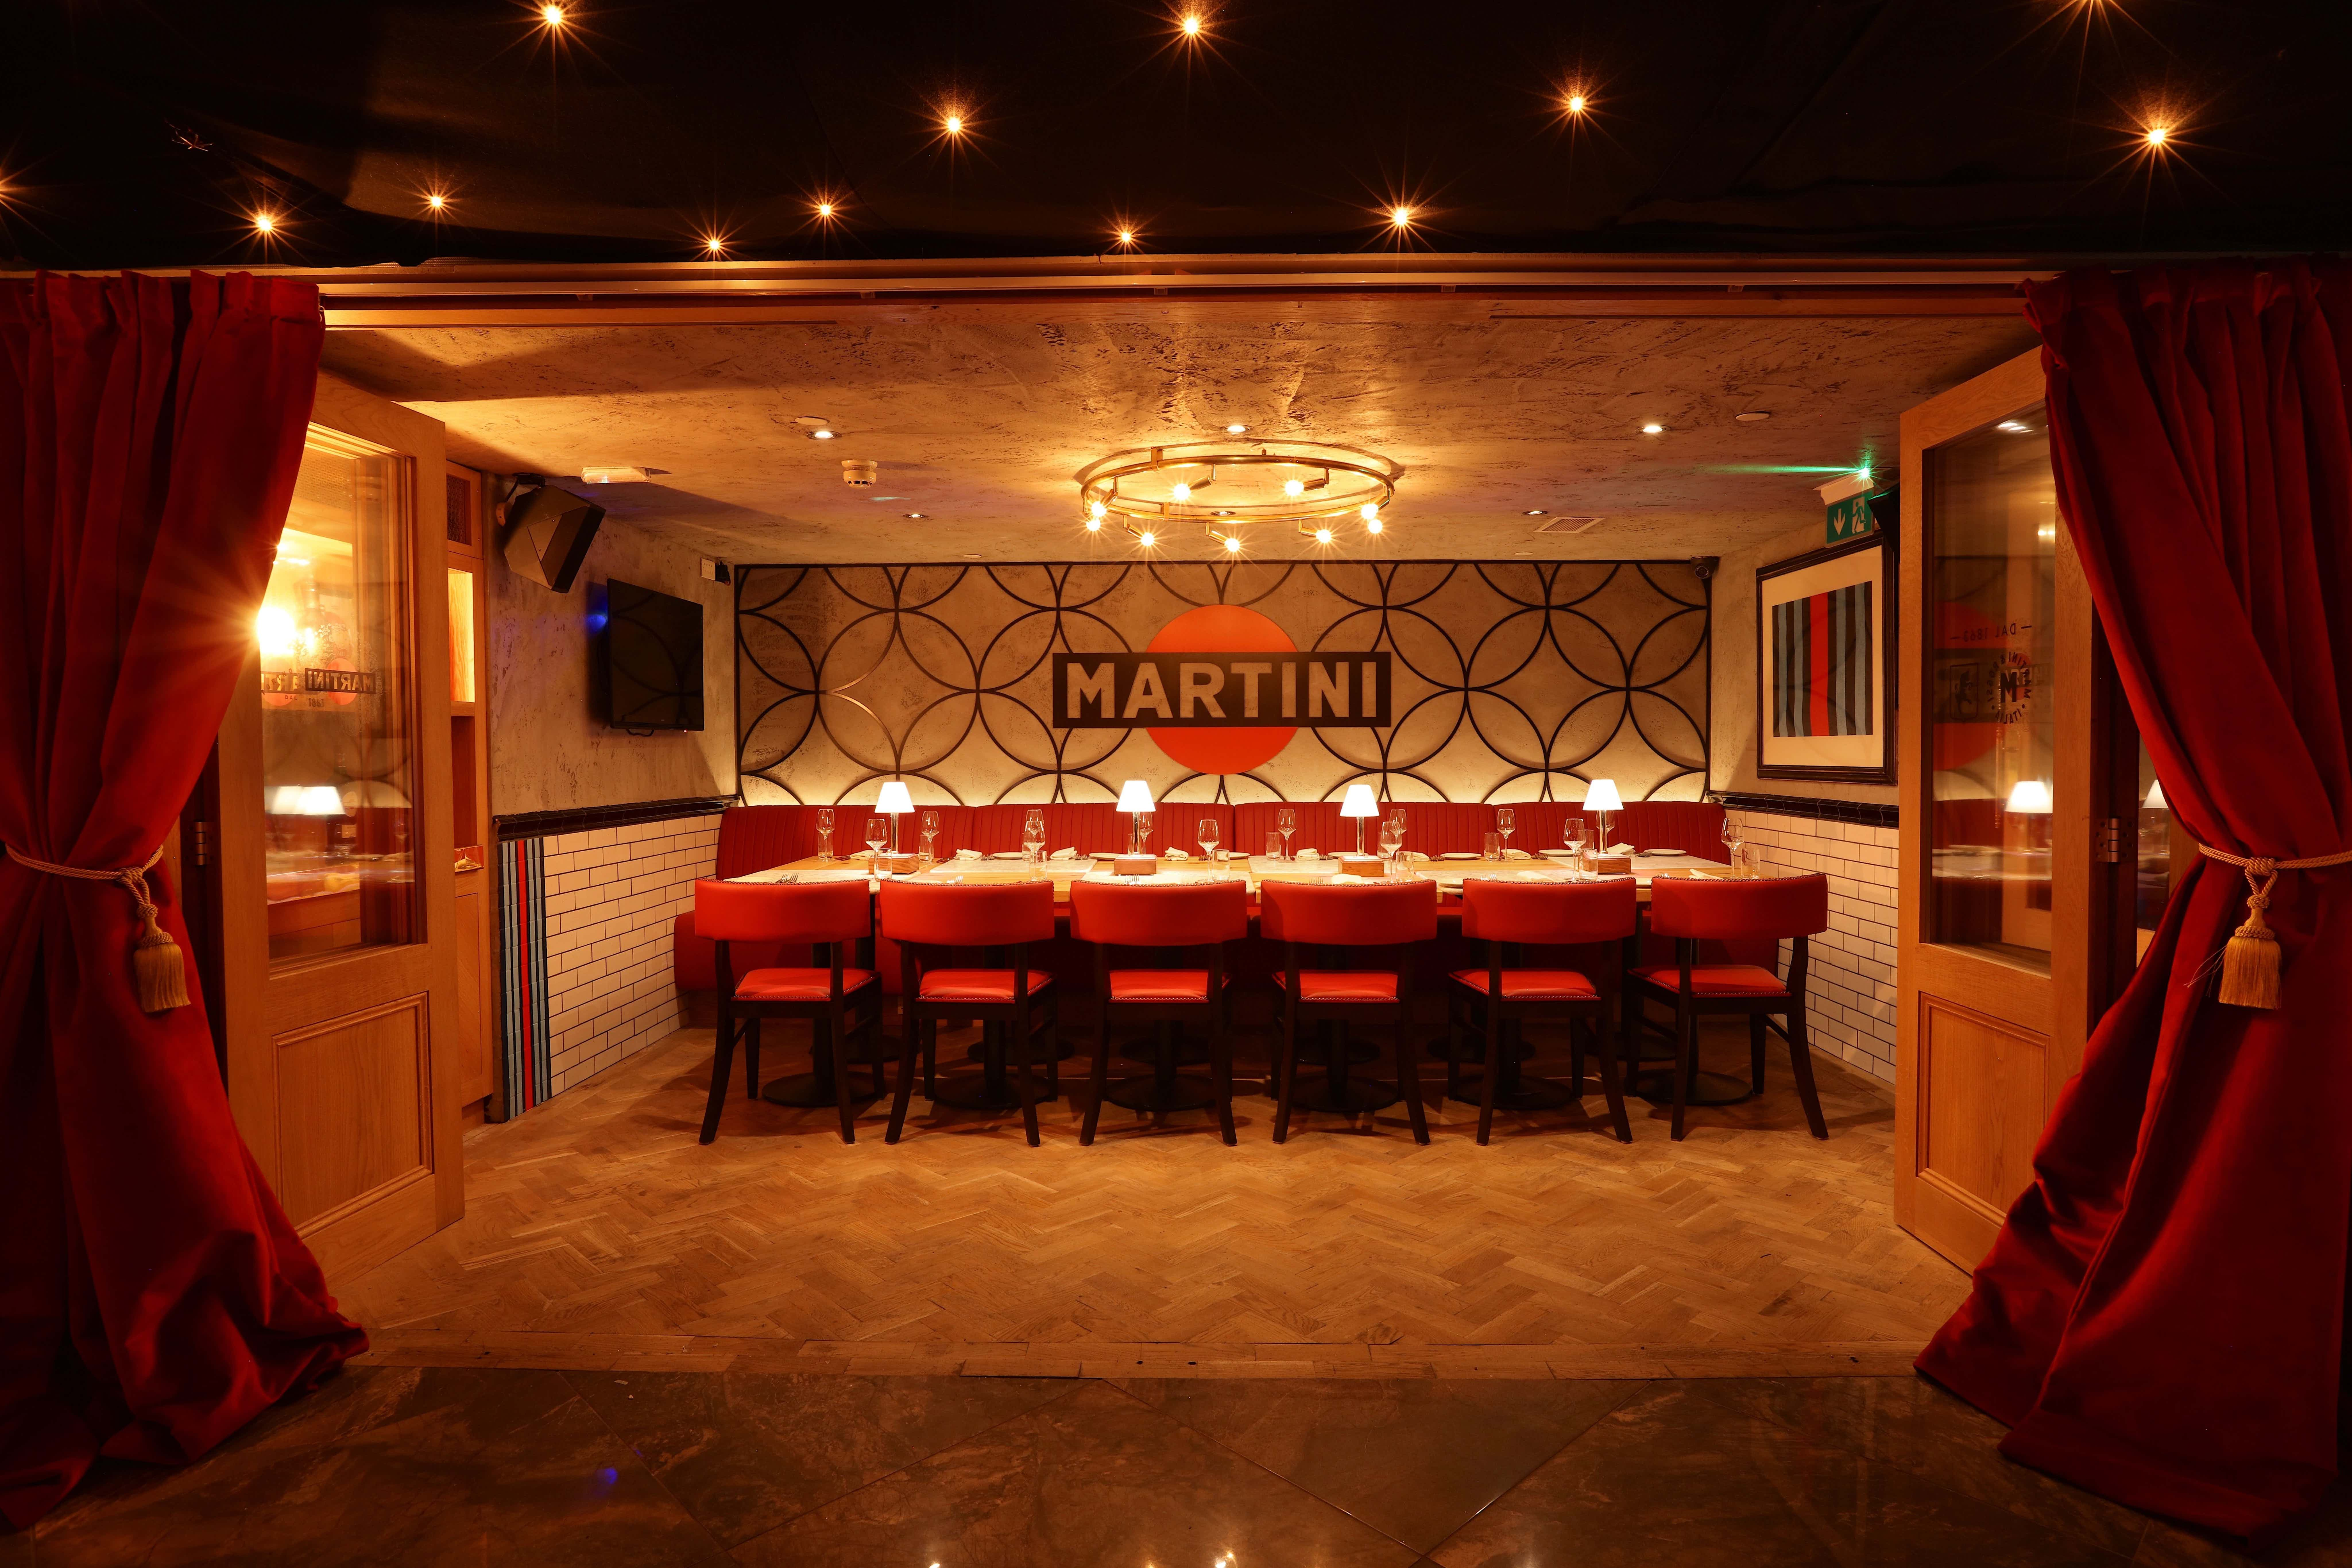 The Martini Room, Bunga Bunga Covent Garden